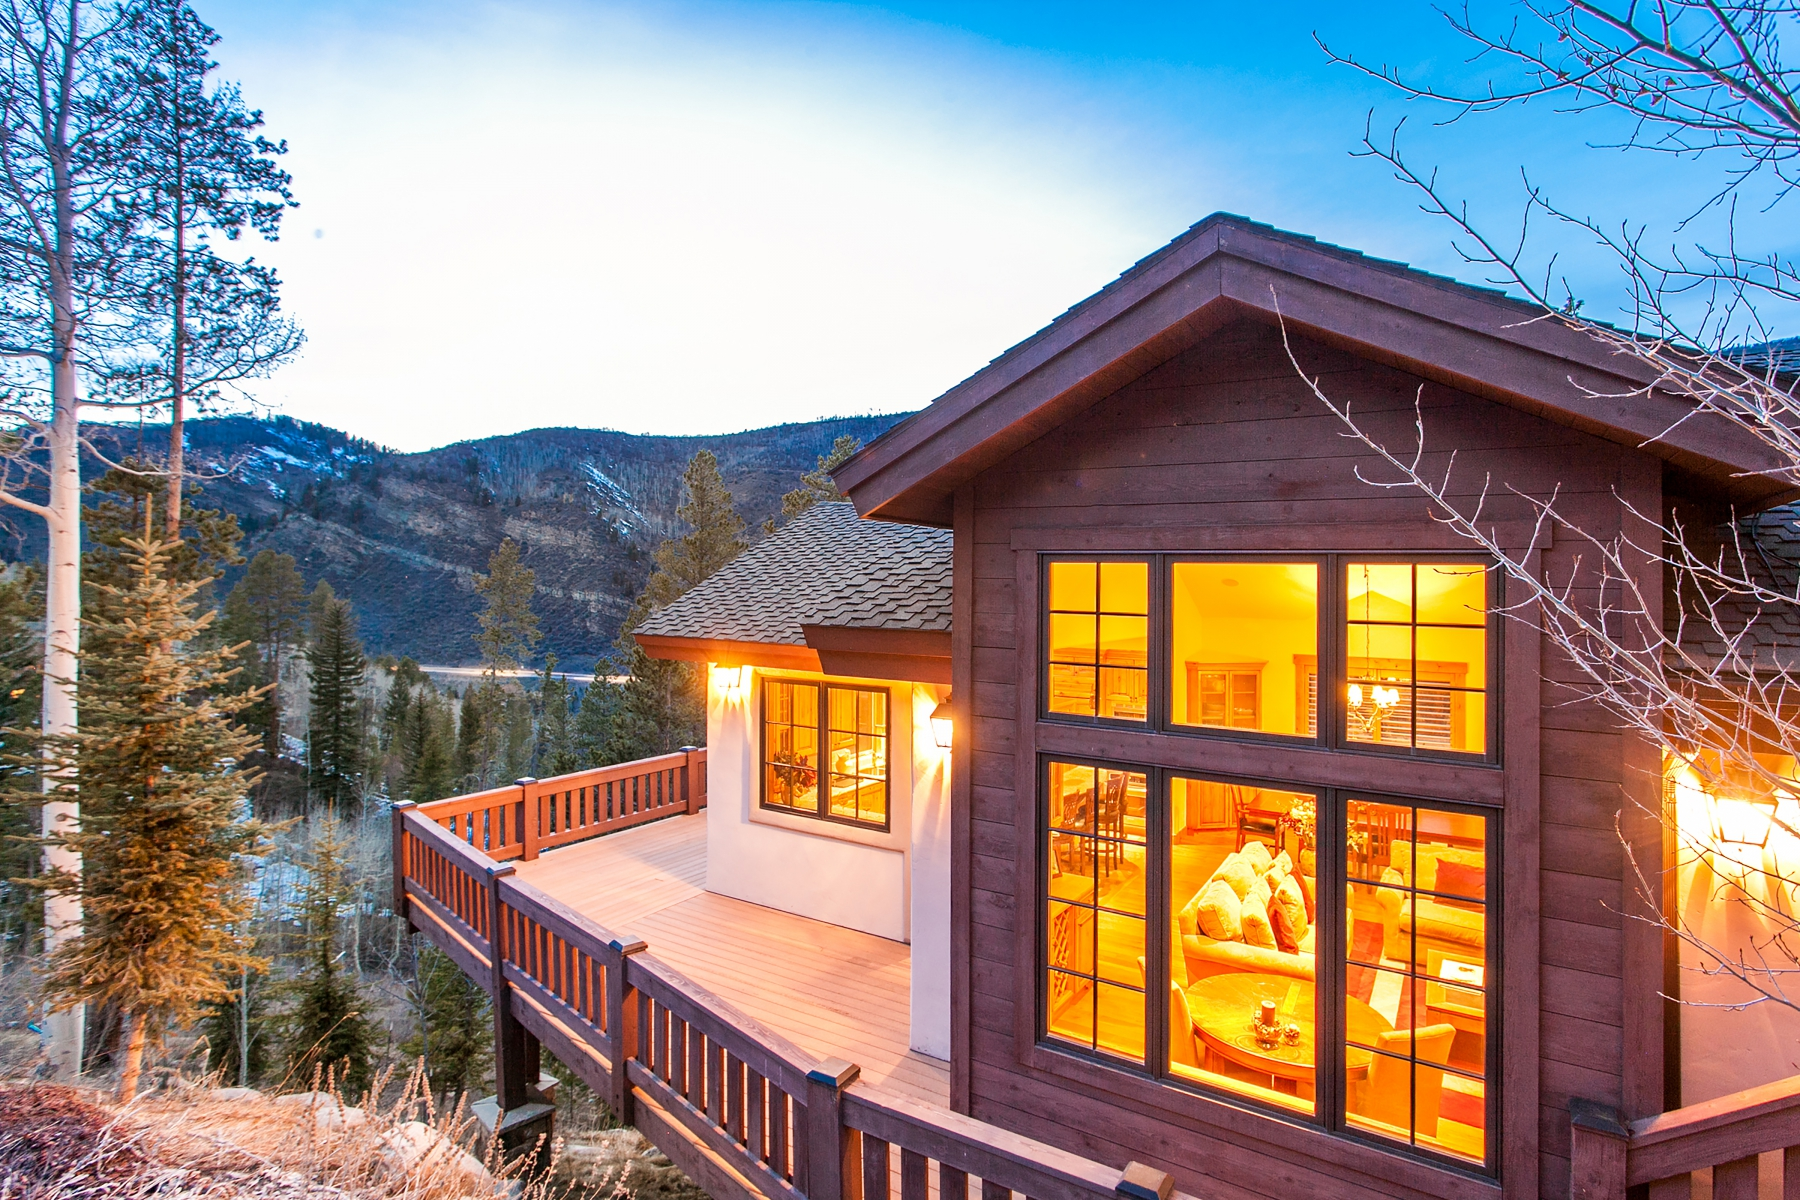 Duplex 為 出售 在 Vail Mountain Retreat 2735 Snowberry Dr #A Vail, 科羅拉多州 81657 美國